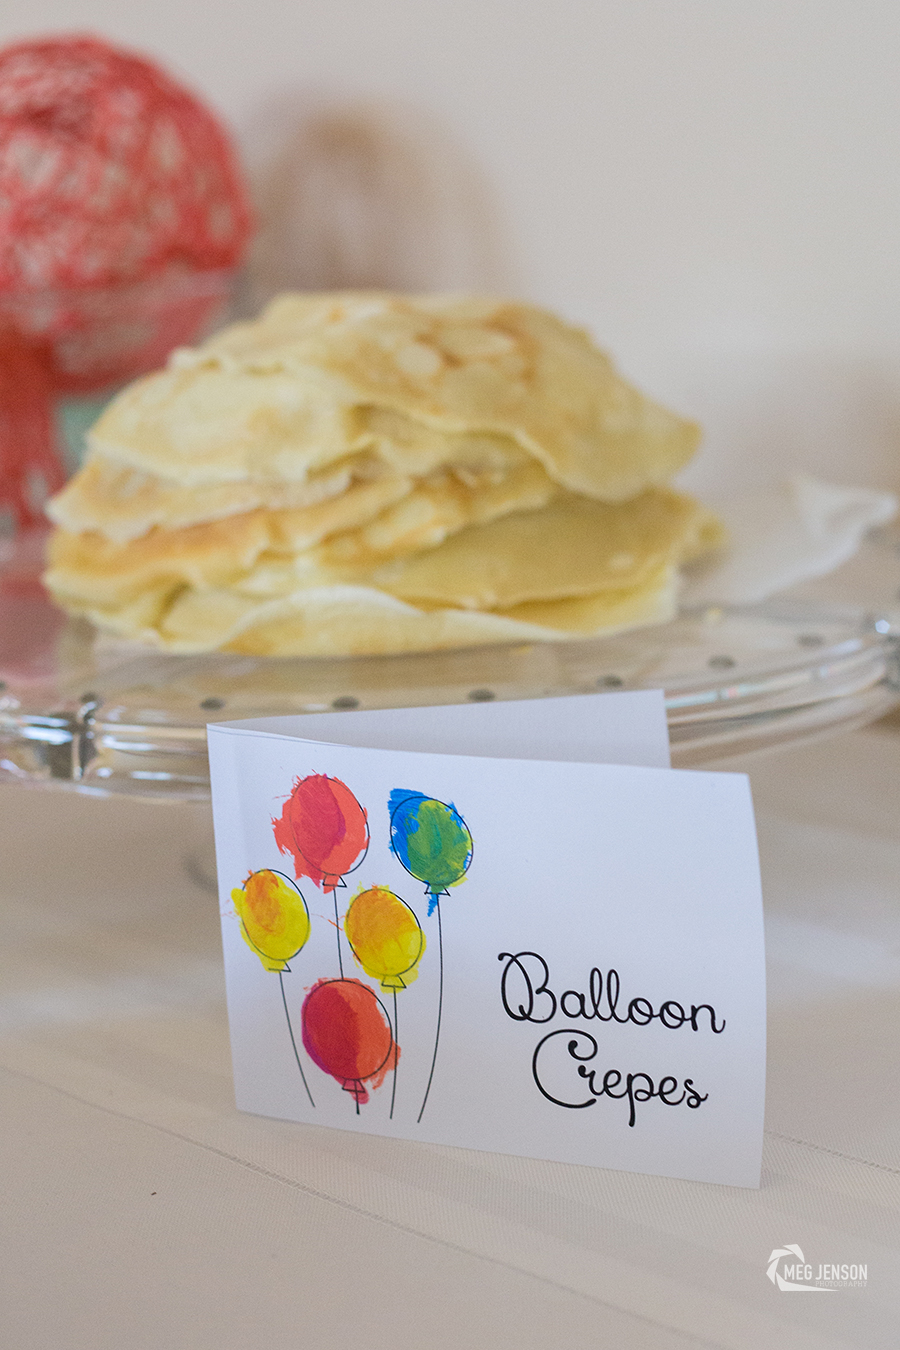 Balloon Crepes